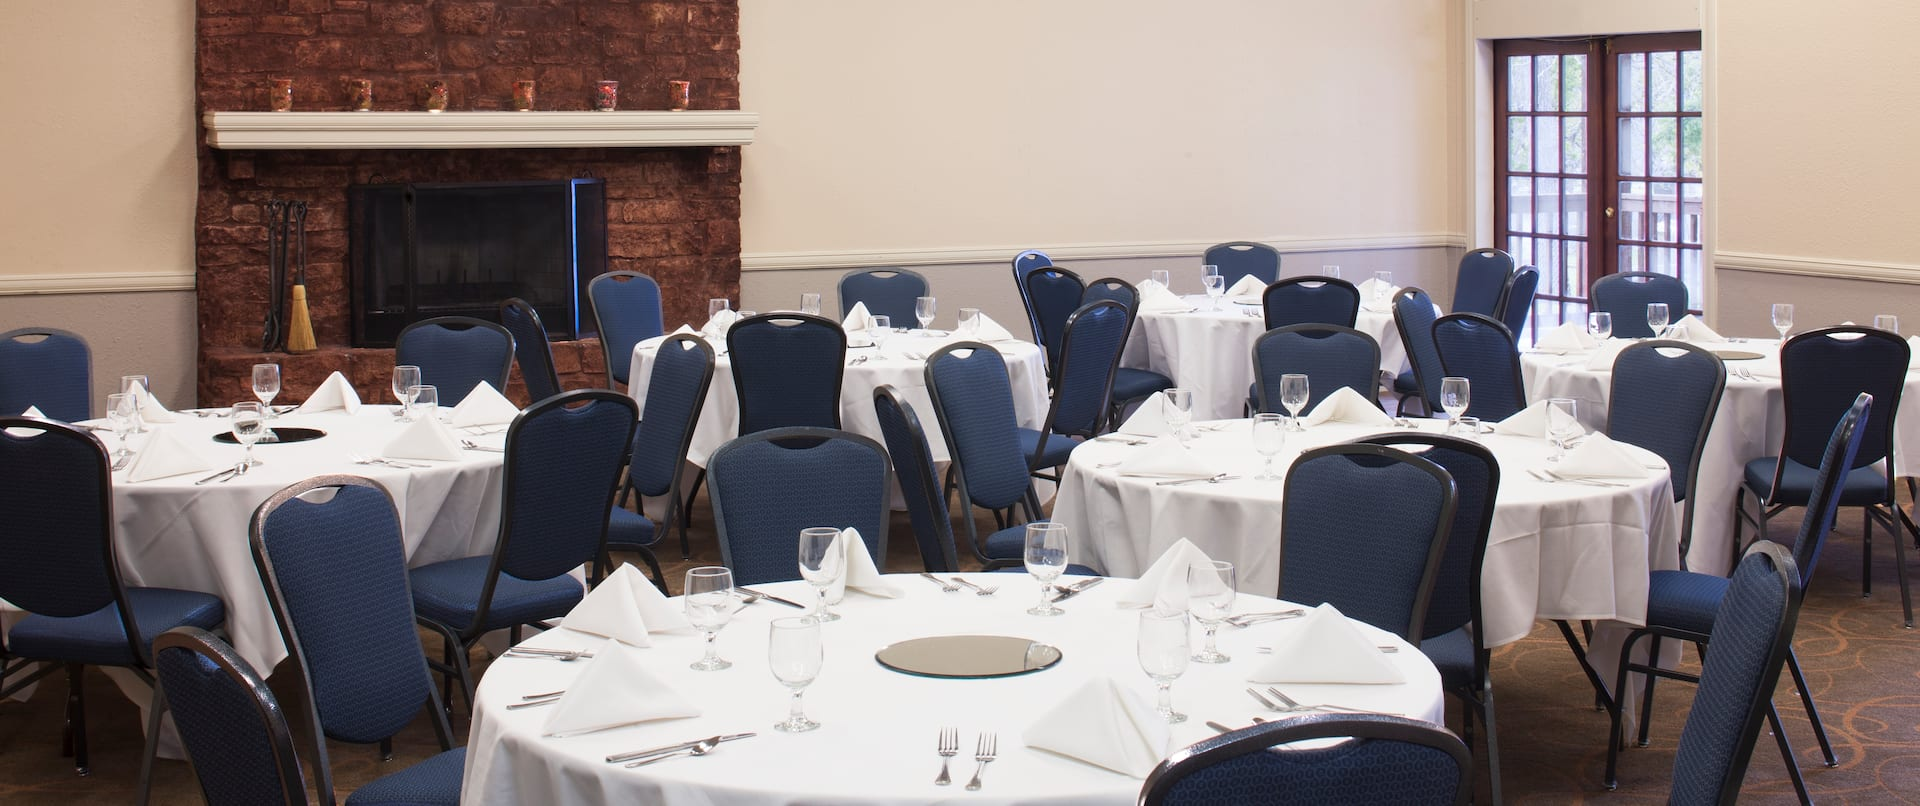 Place Settings on Round Tables With White Tablecloths, Blue Chairs, Wall Art Above Fireplace, and Window in University Meeting Room